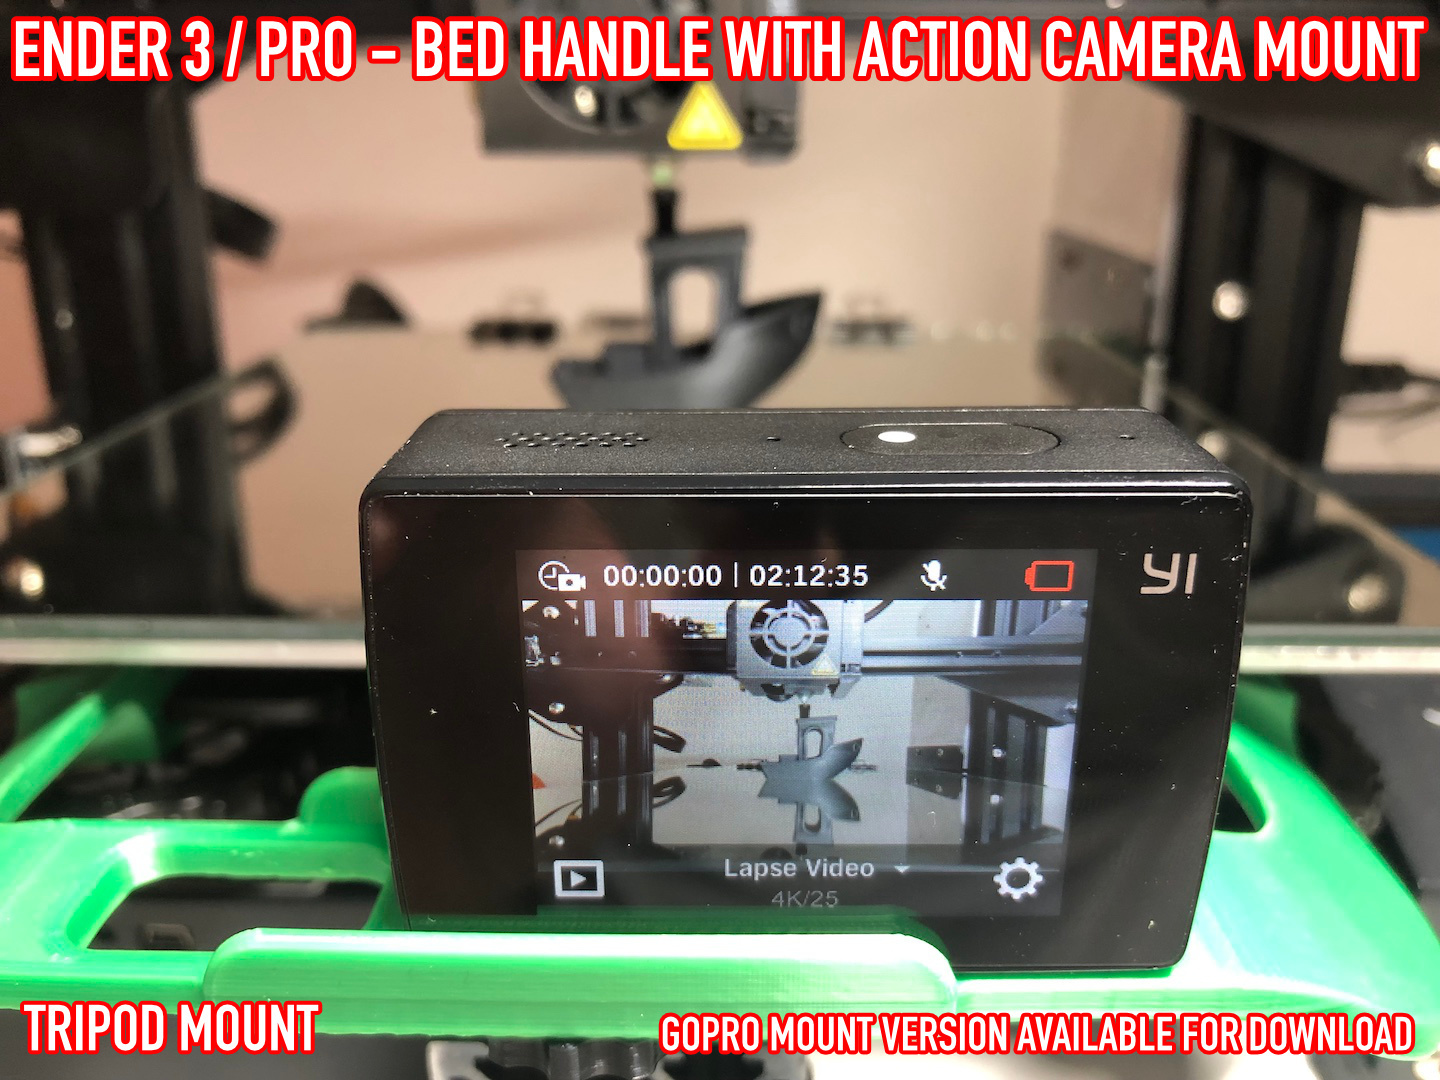 11.jpg Download free STL file ADKS - Ender 3 Bed Handle with action cam mount • Template to 3D print, Adarkstudio